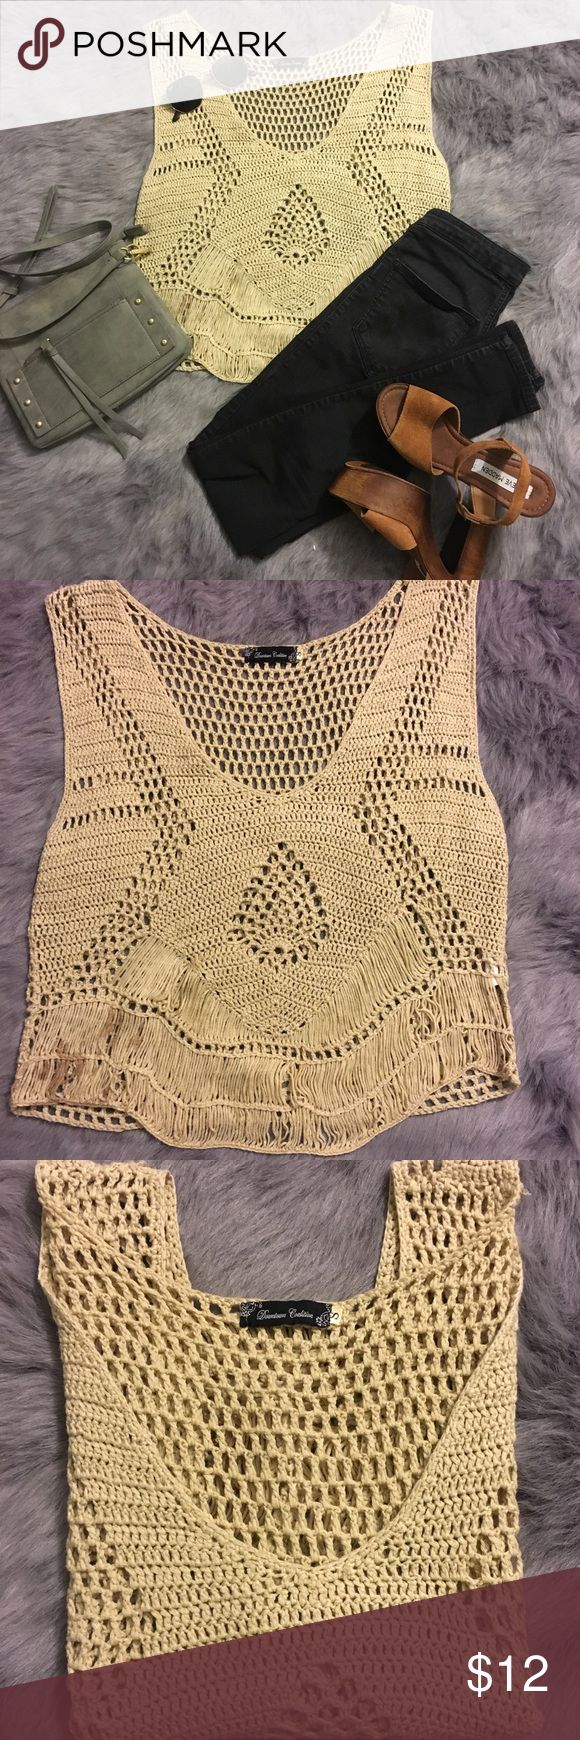 Downtown Coalition knit top Beige knit top from downtown Coalition. Loose fit and under shirt or bralette can be worn underneath. Small stain on the bottom left (can be seen in photos).  This top will be a great addition to your closet! It can be dressed up with a black bralette, black jeans, and strappy heels or dresses down with jean shorts and converse 💛 Downtown Coalition Tops Tank Tops